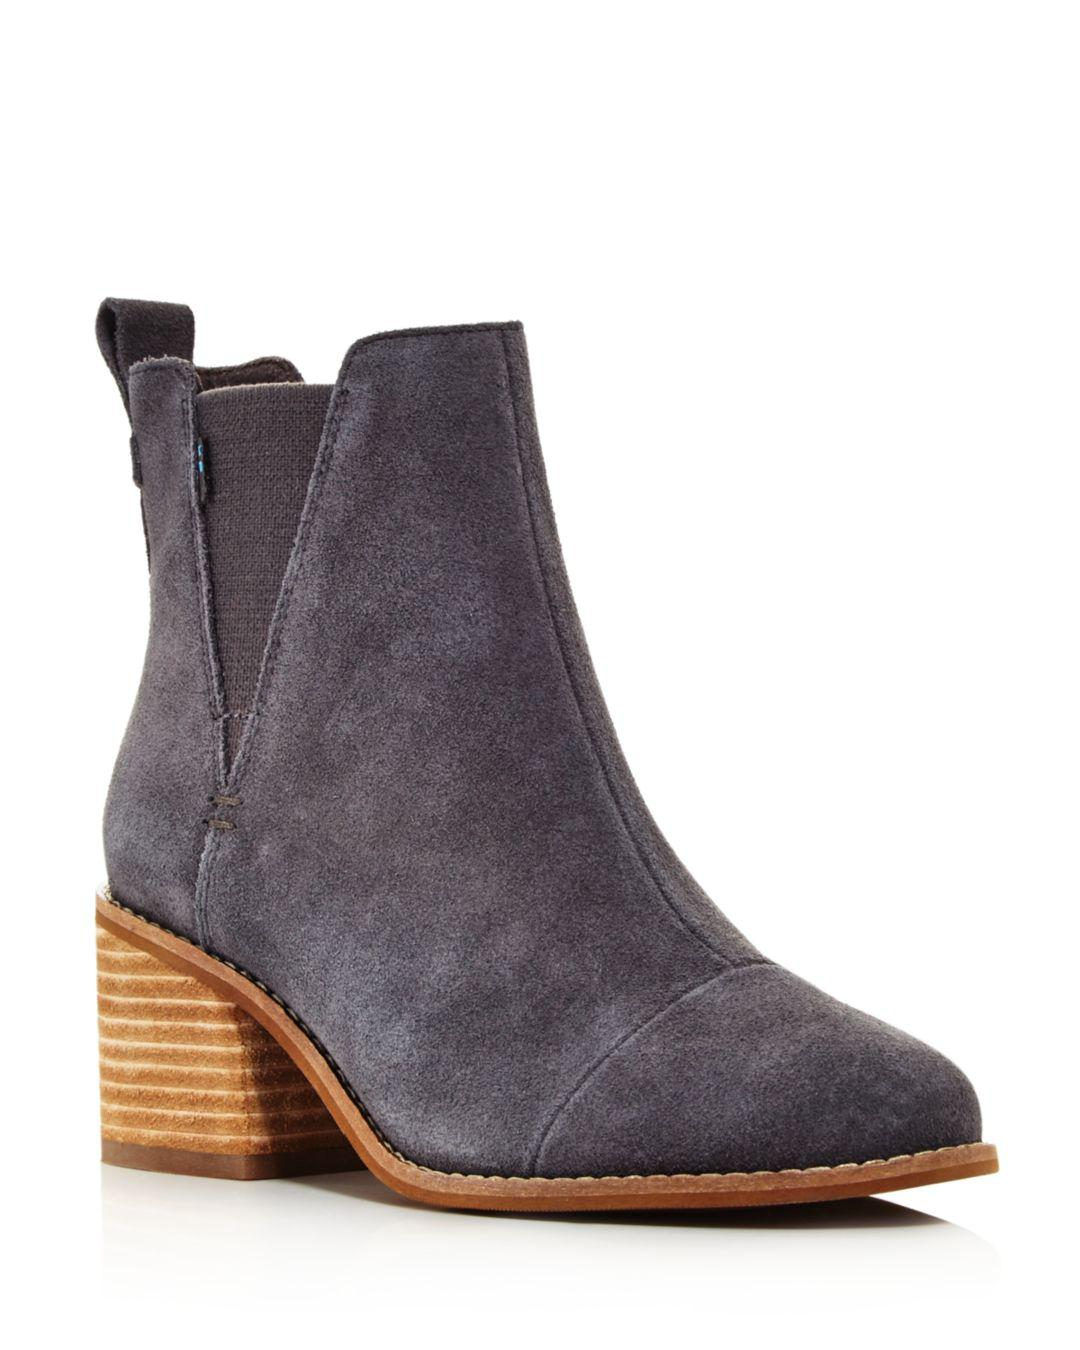 c9b59f85f5a Lyst - TOMS Women s Esme Round Toe Suede Chelsea Booties in Gray